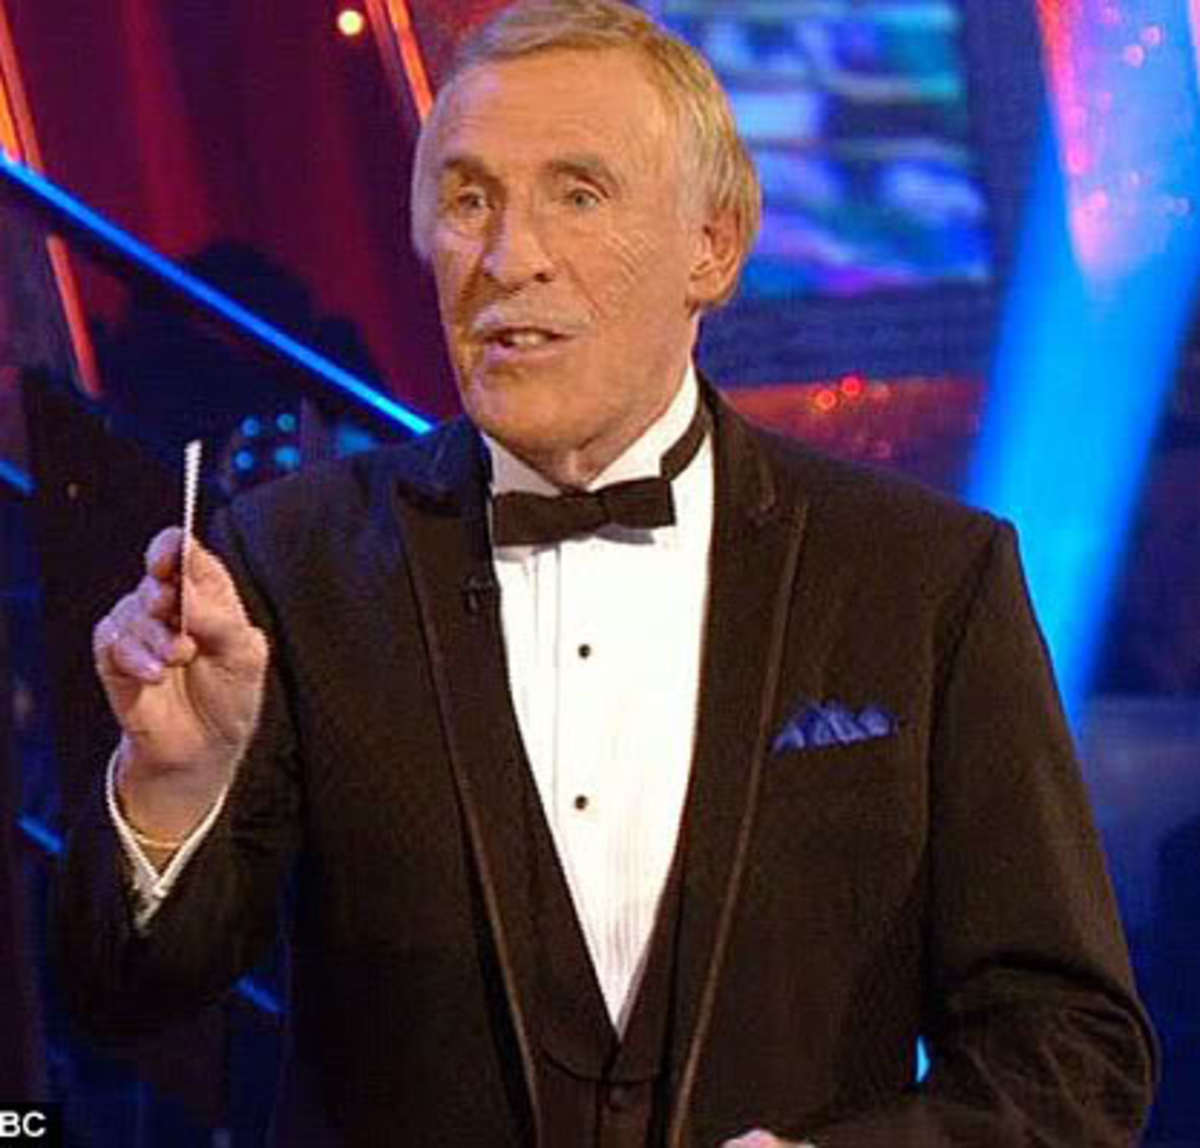 Another Veteran Entertainer Bruce Forsyth Himself Who Has Had To Pull Out Of Shows To Ill Health Paid Tribute To Wogan.